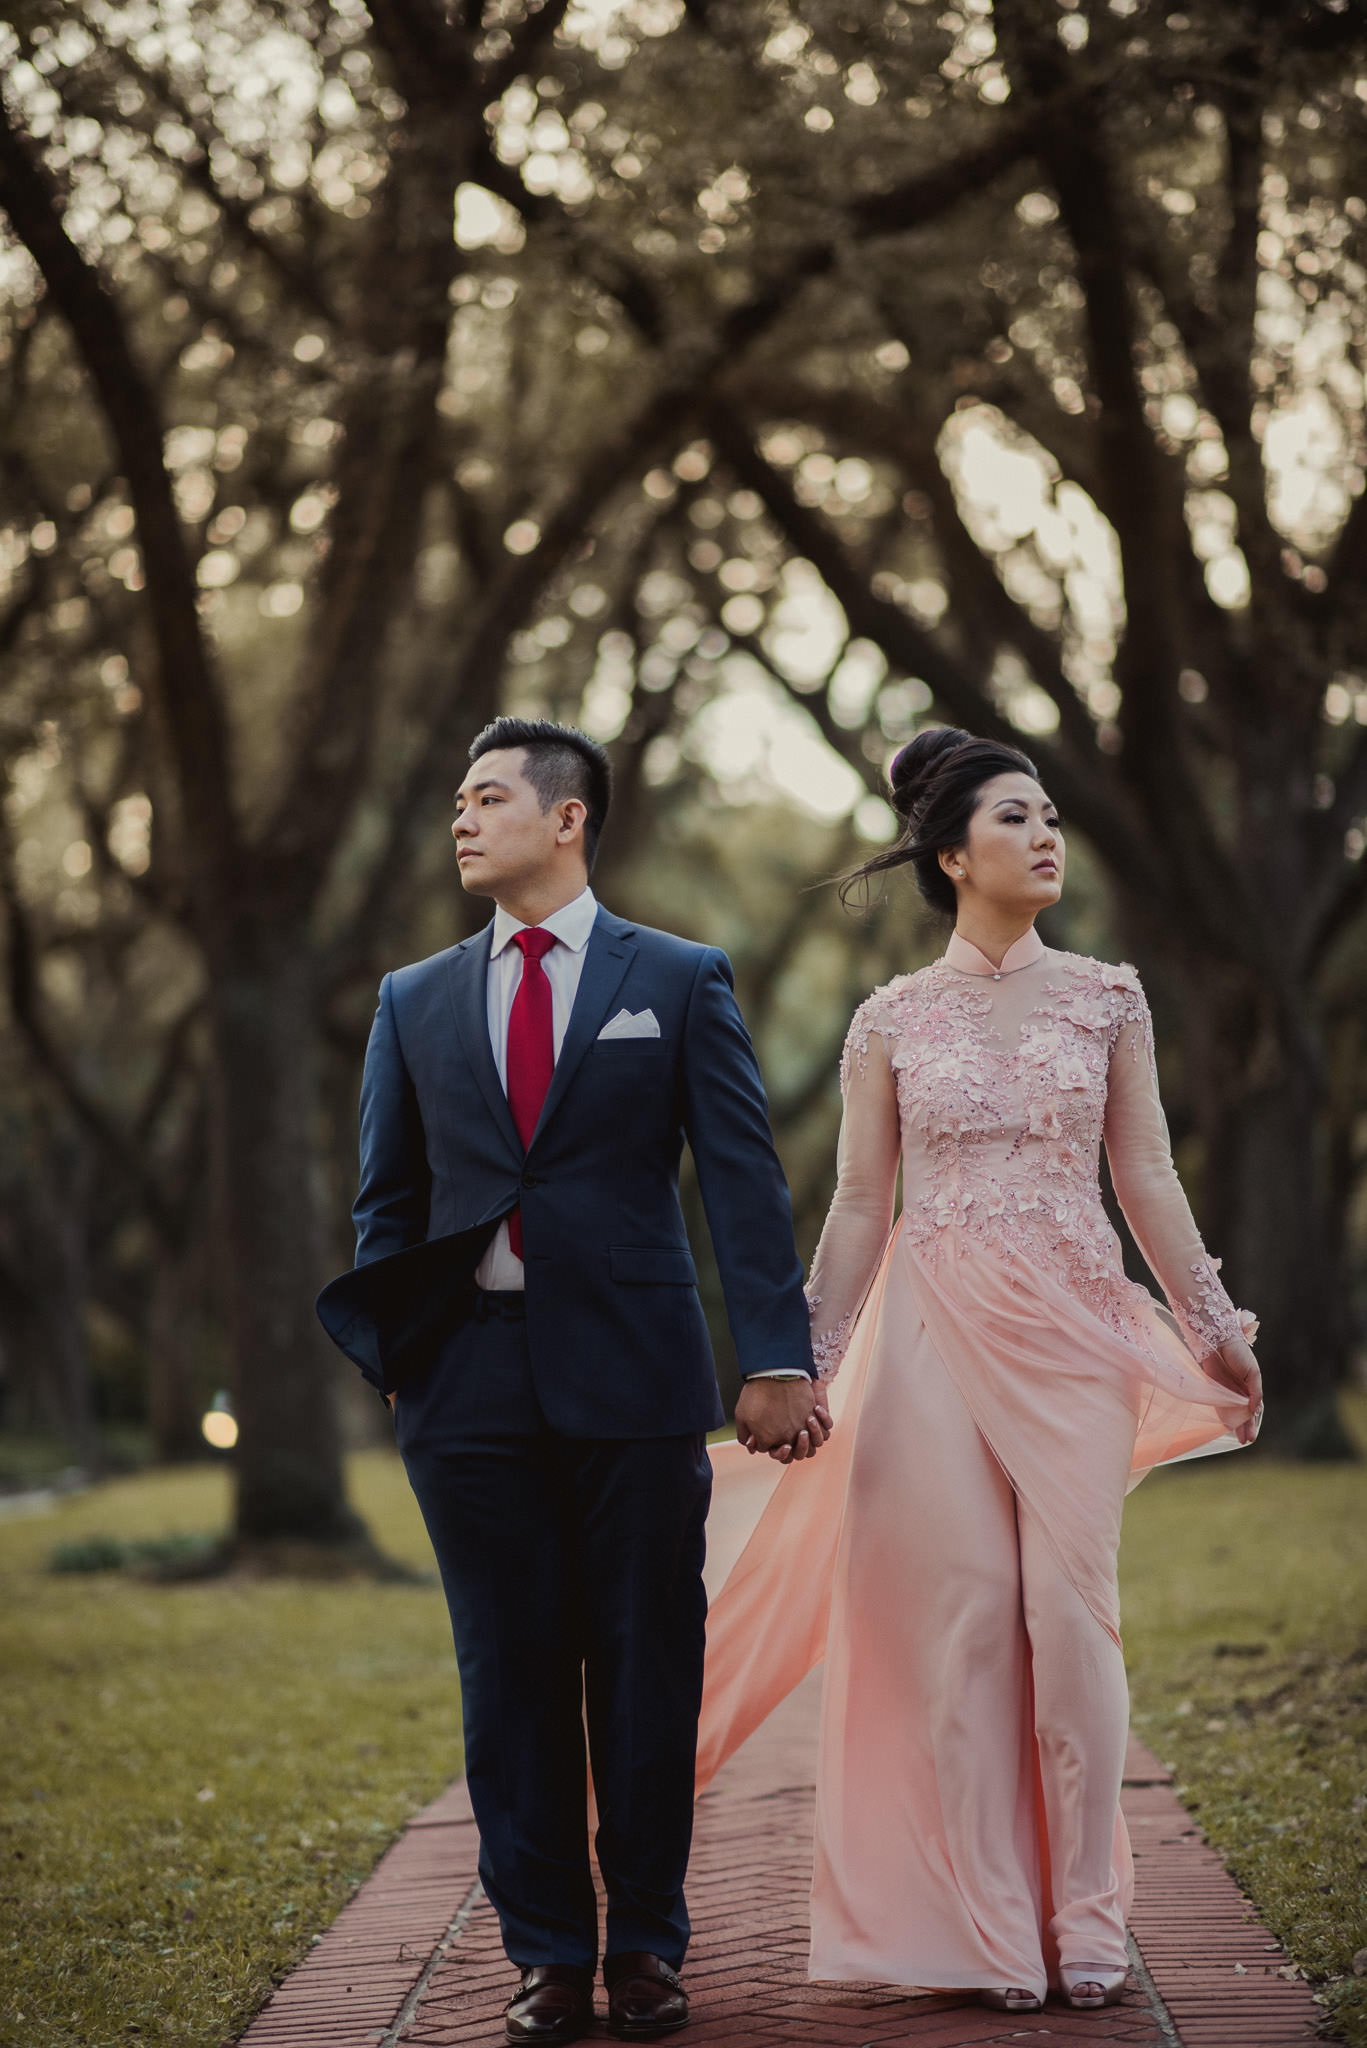 kim-michael-houston-vietnamese-tea-ceremony-engagement-downtown-boulevard-oaks-photographer-59.jpg